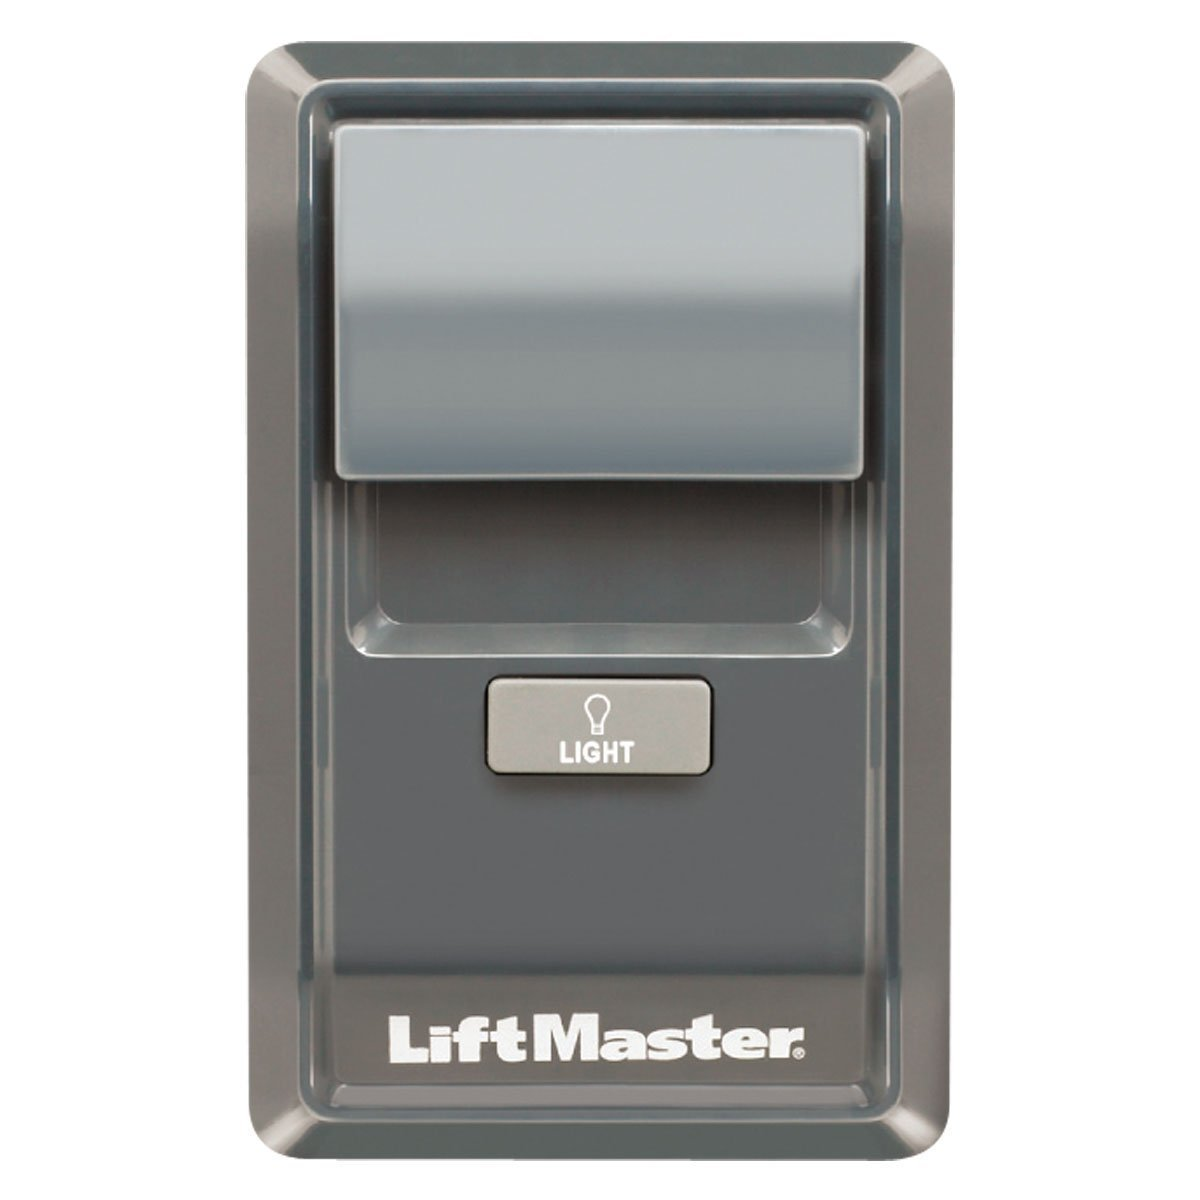 Liftmaster 885lm Smart Multi Function Wireless Wall Control Garage